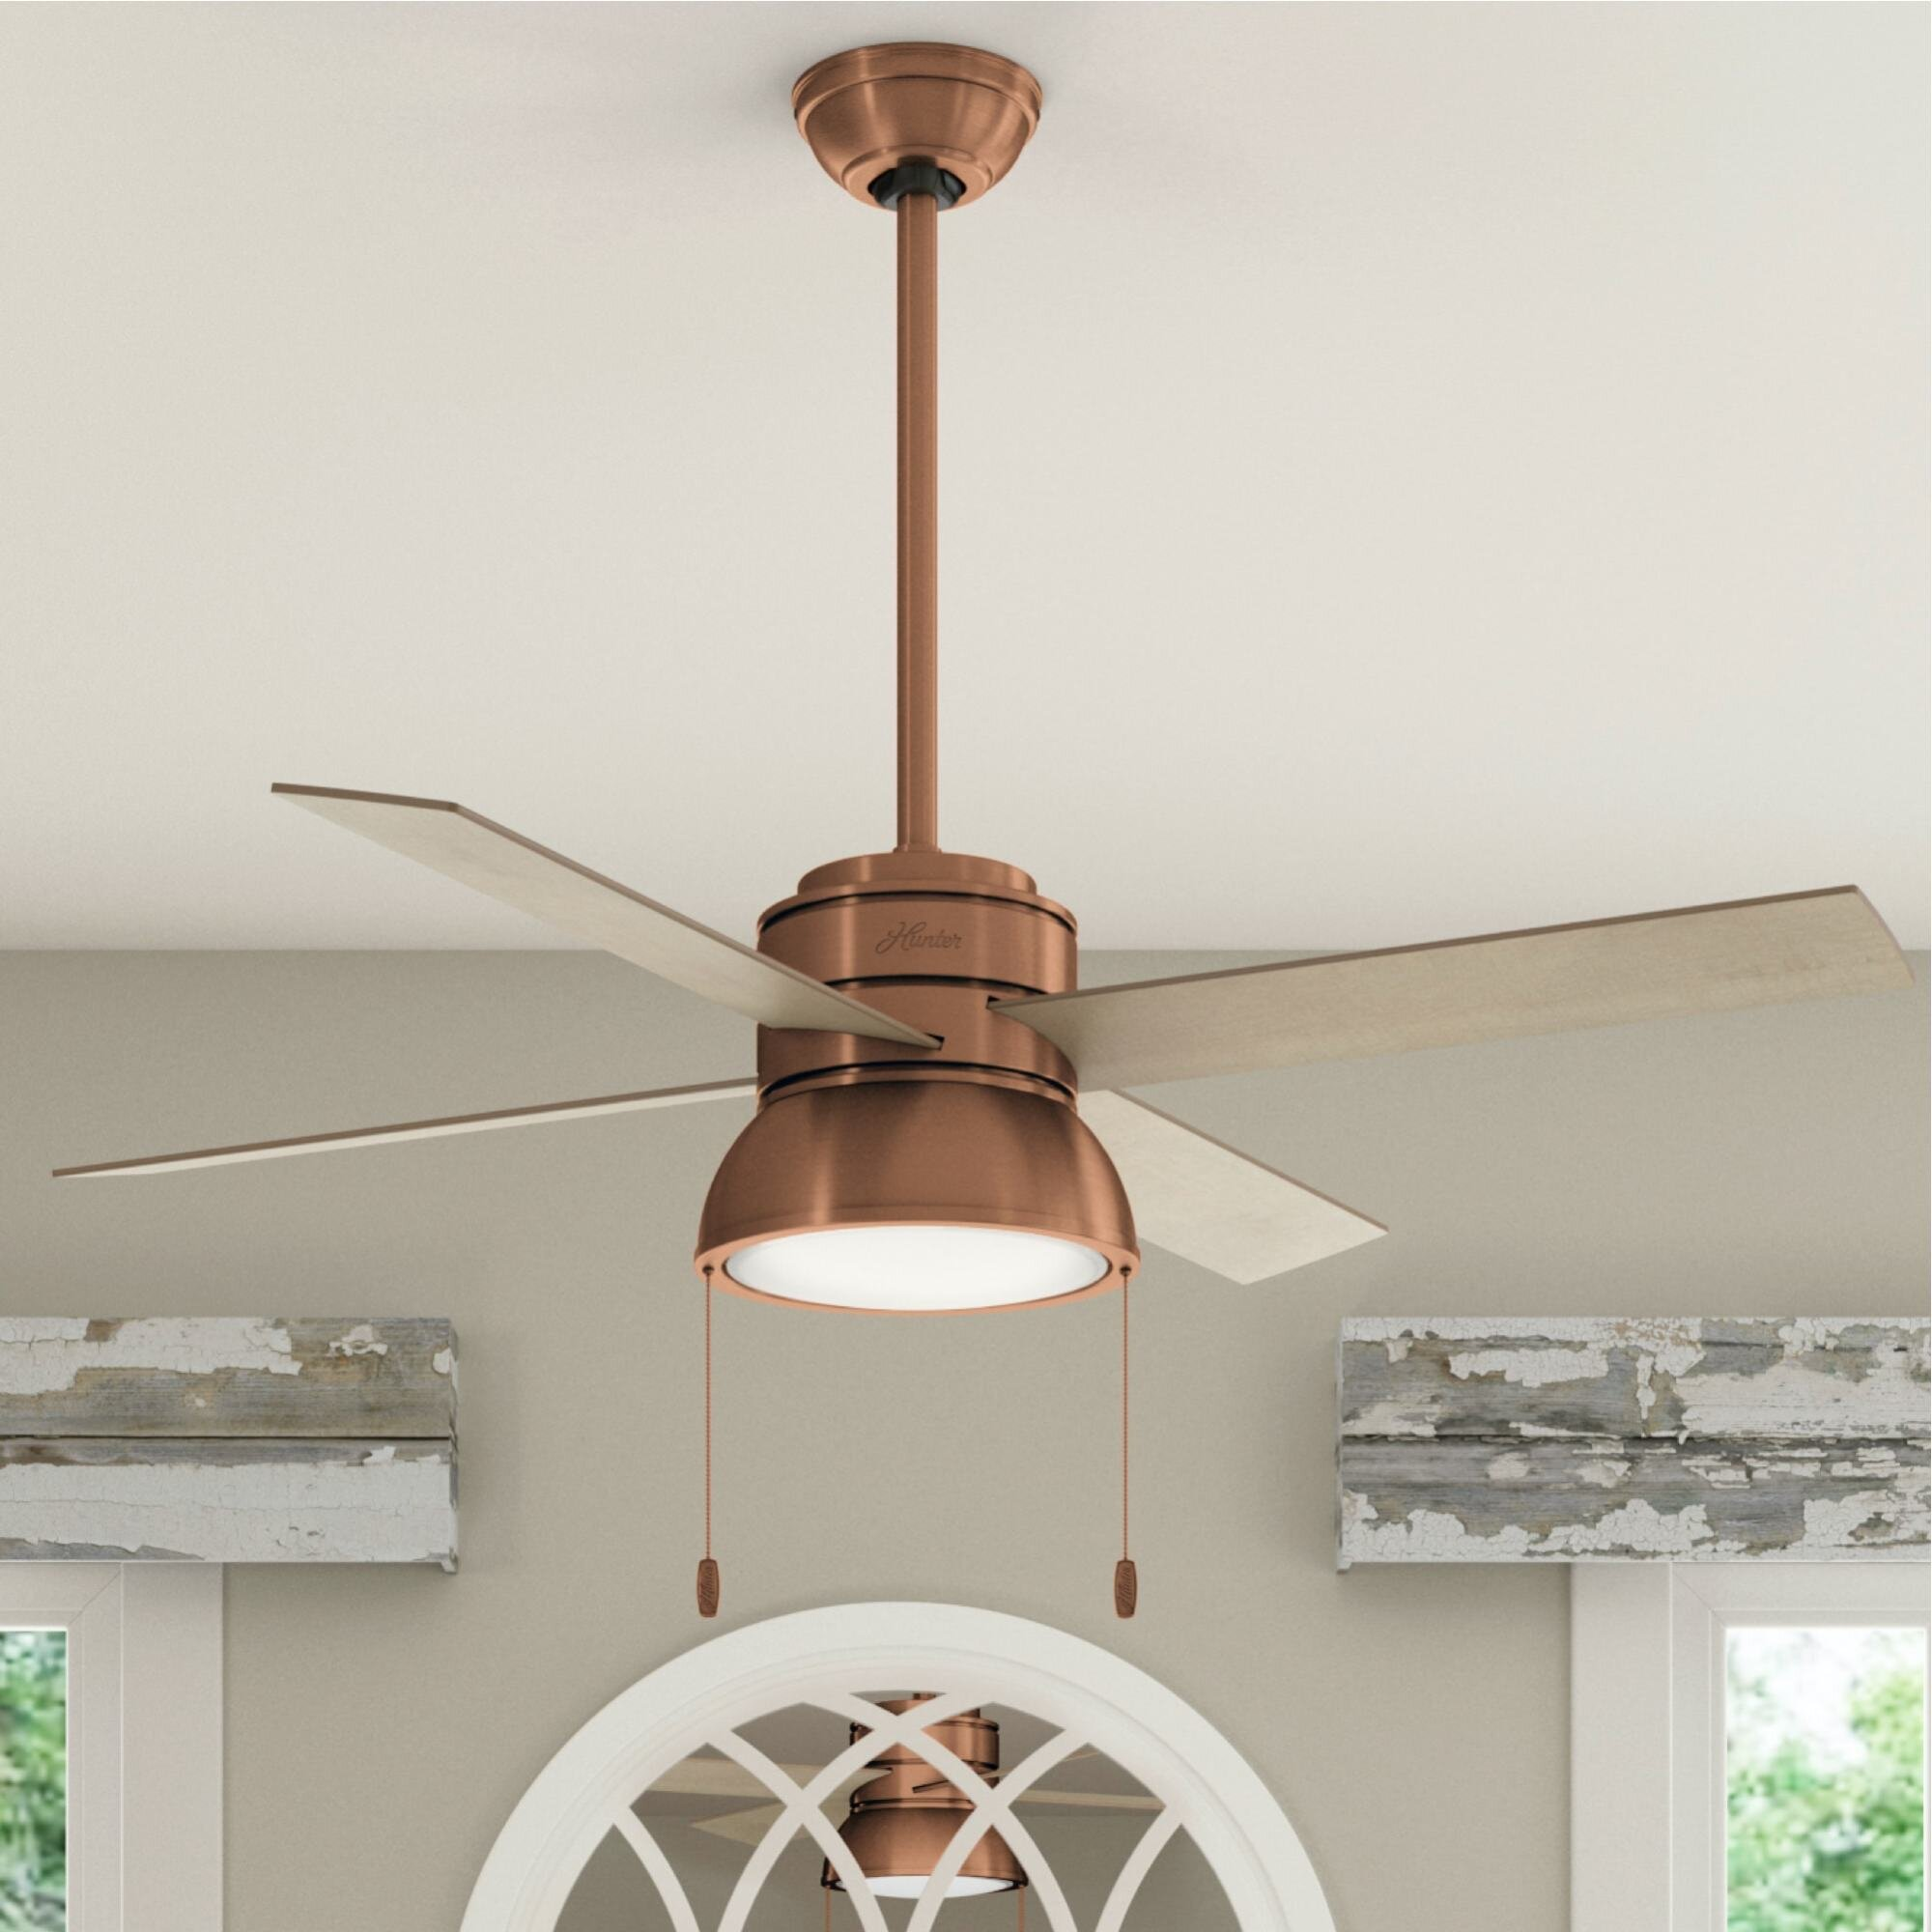 Hunter Fan 52 Loki Weathered Copper Ceiling Fan With Led Light Kit And Pull Chain Wayfair